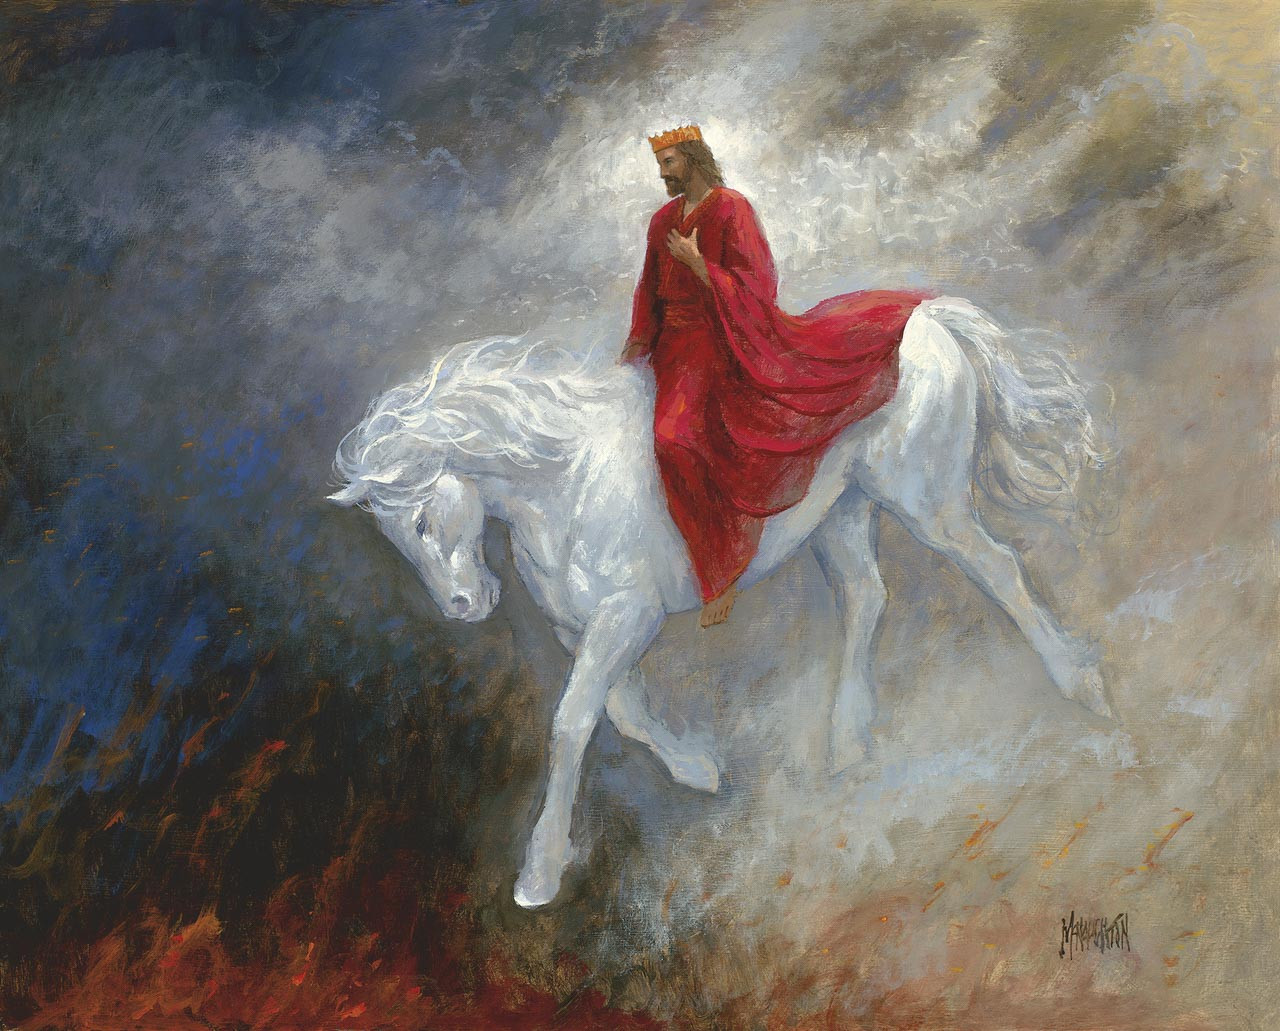 Jesus Christ Second Coming Paintings